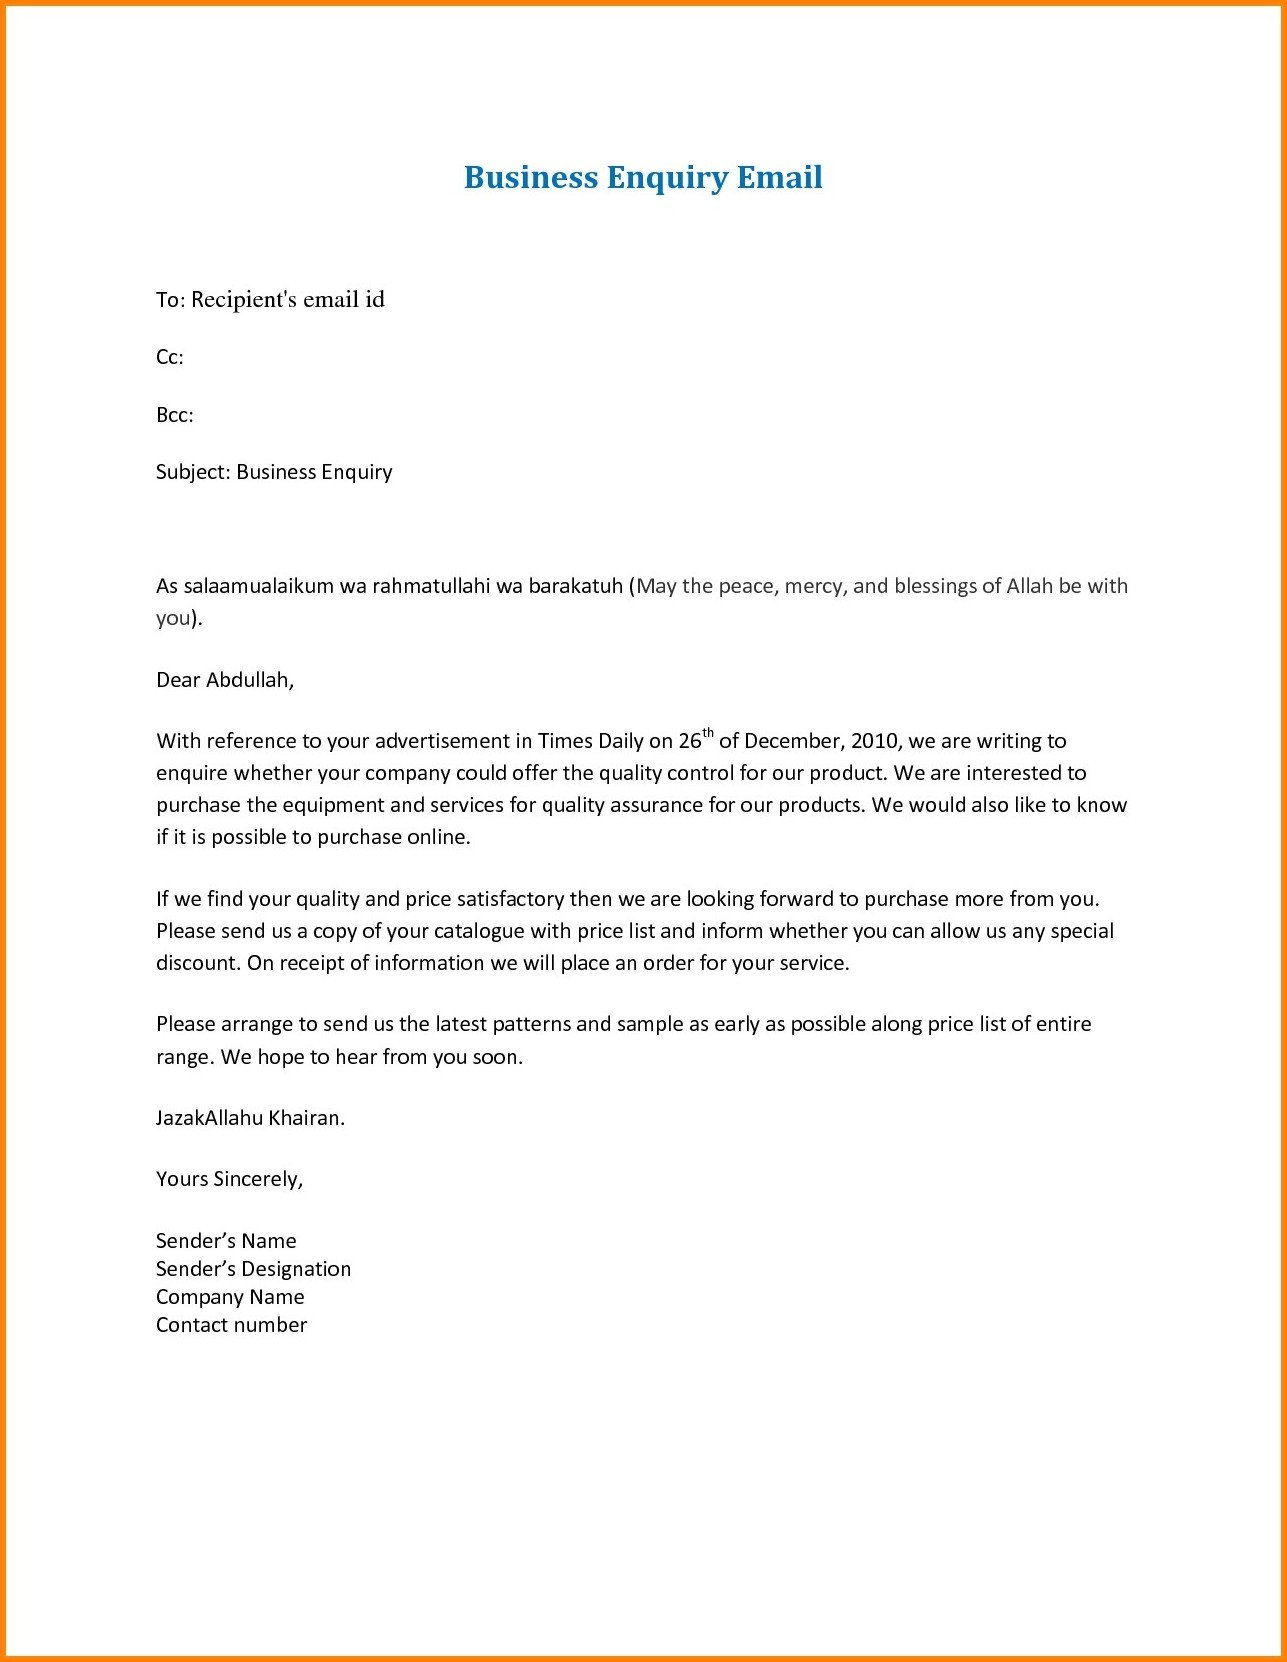 Business Email Format Sample Fresh Business Email Format The Free